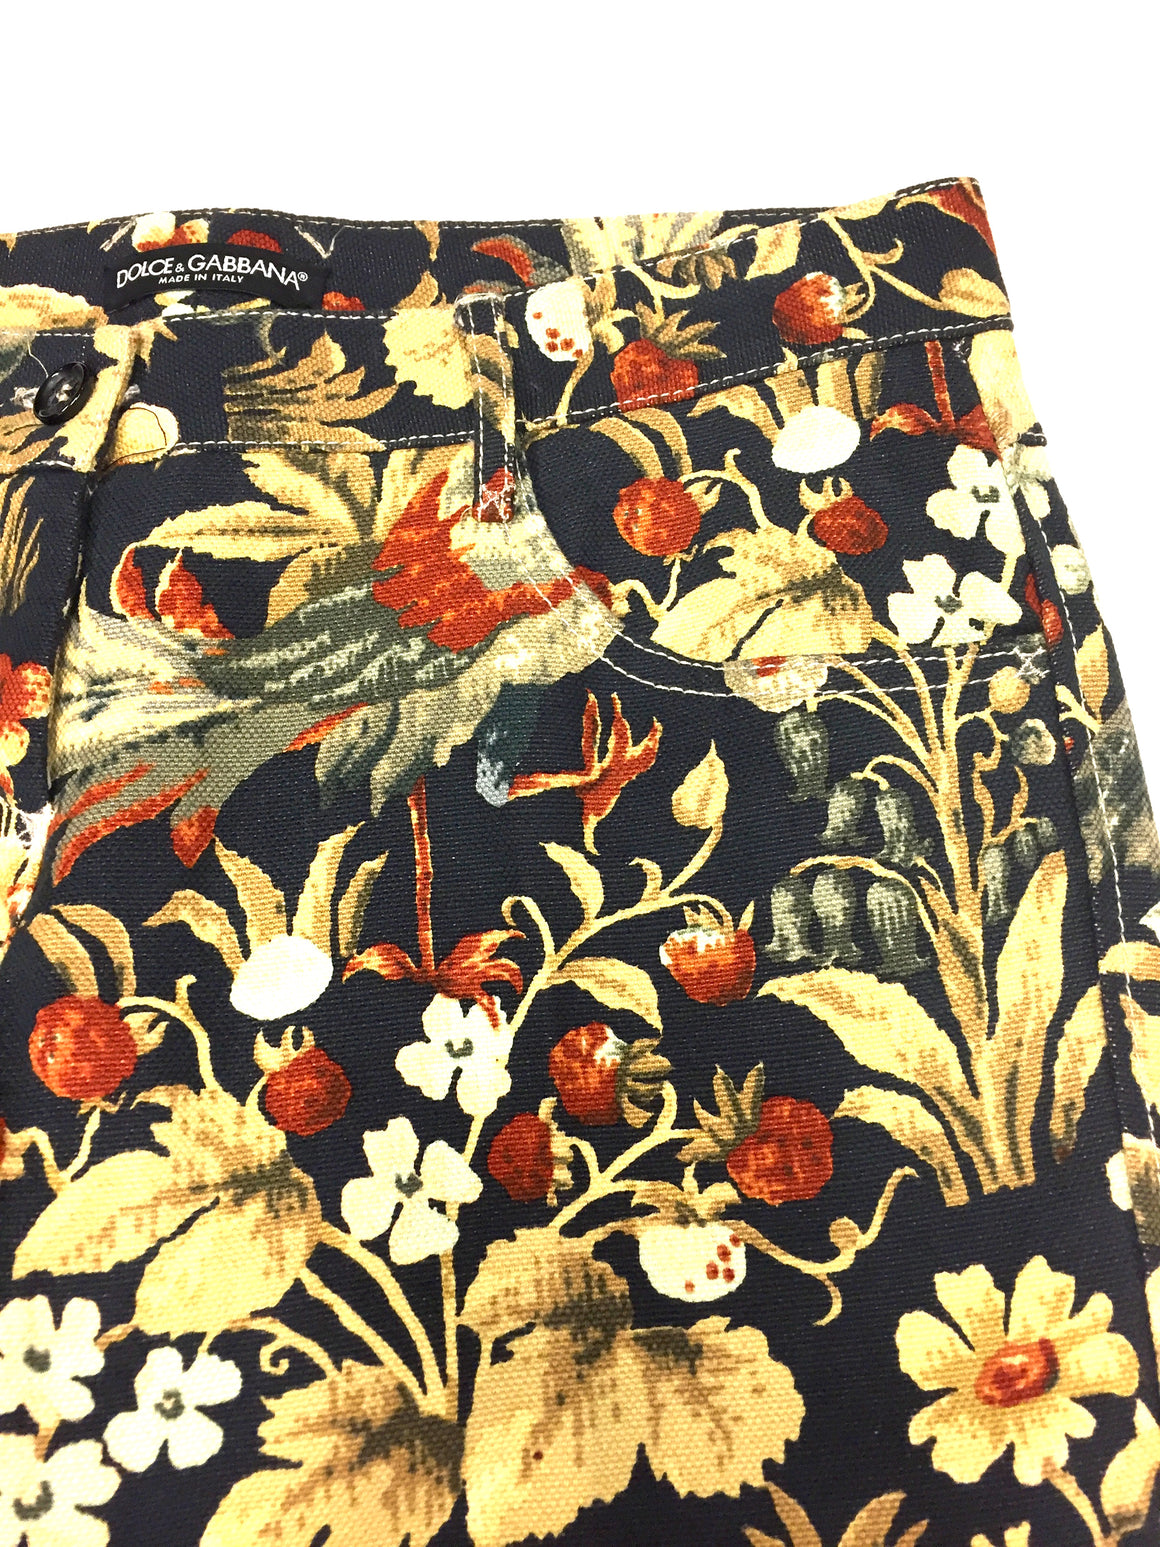 DOLCE & GABBANA Black/Multicolor Floral-Print Cotton/Linen Cropped Jeans/Pants